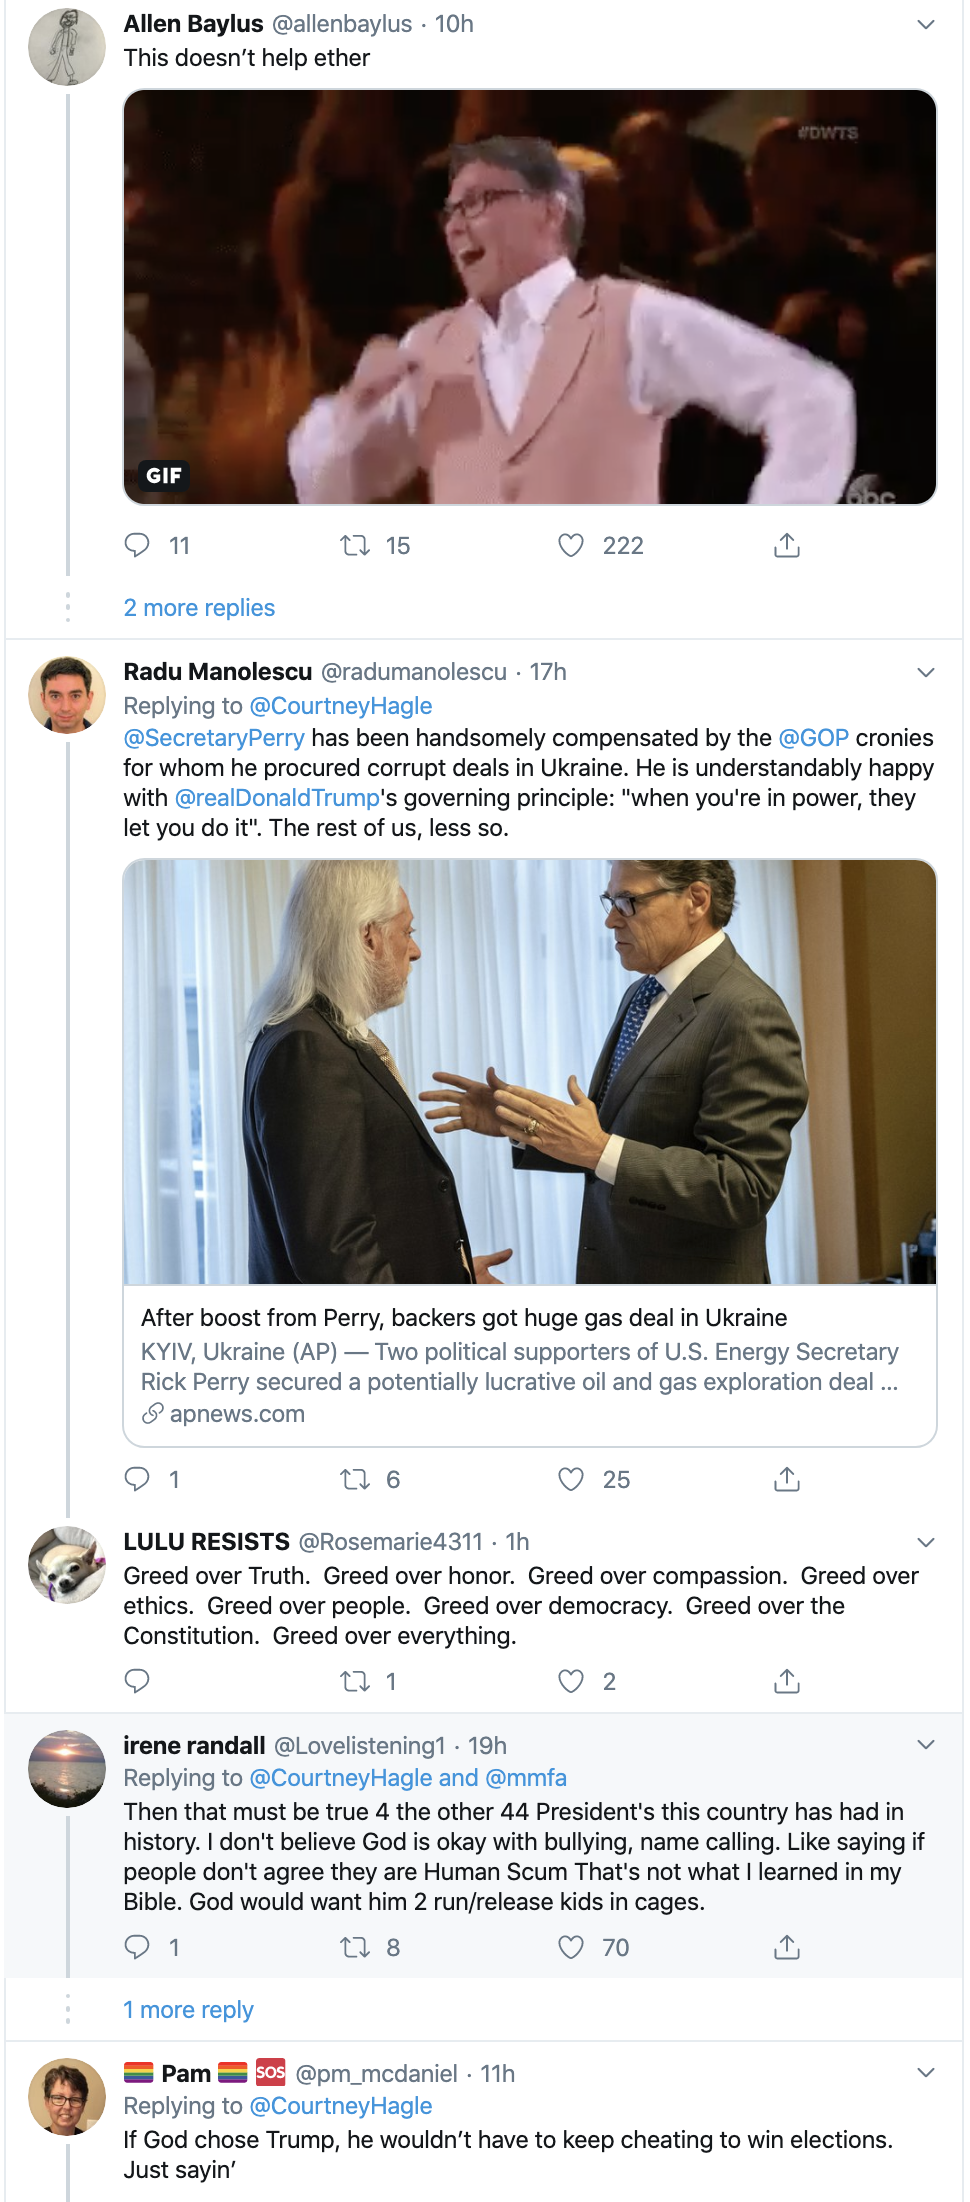 Screen-Shot-2019-11-25-at-8.19.01-AM Delusional Top Trump Official Calls Trump 'The Chosen One' Alt-Right Economy Environment Featured Religion Top Stories